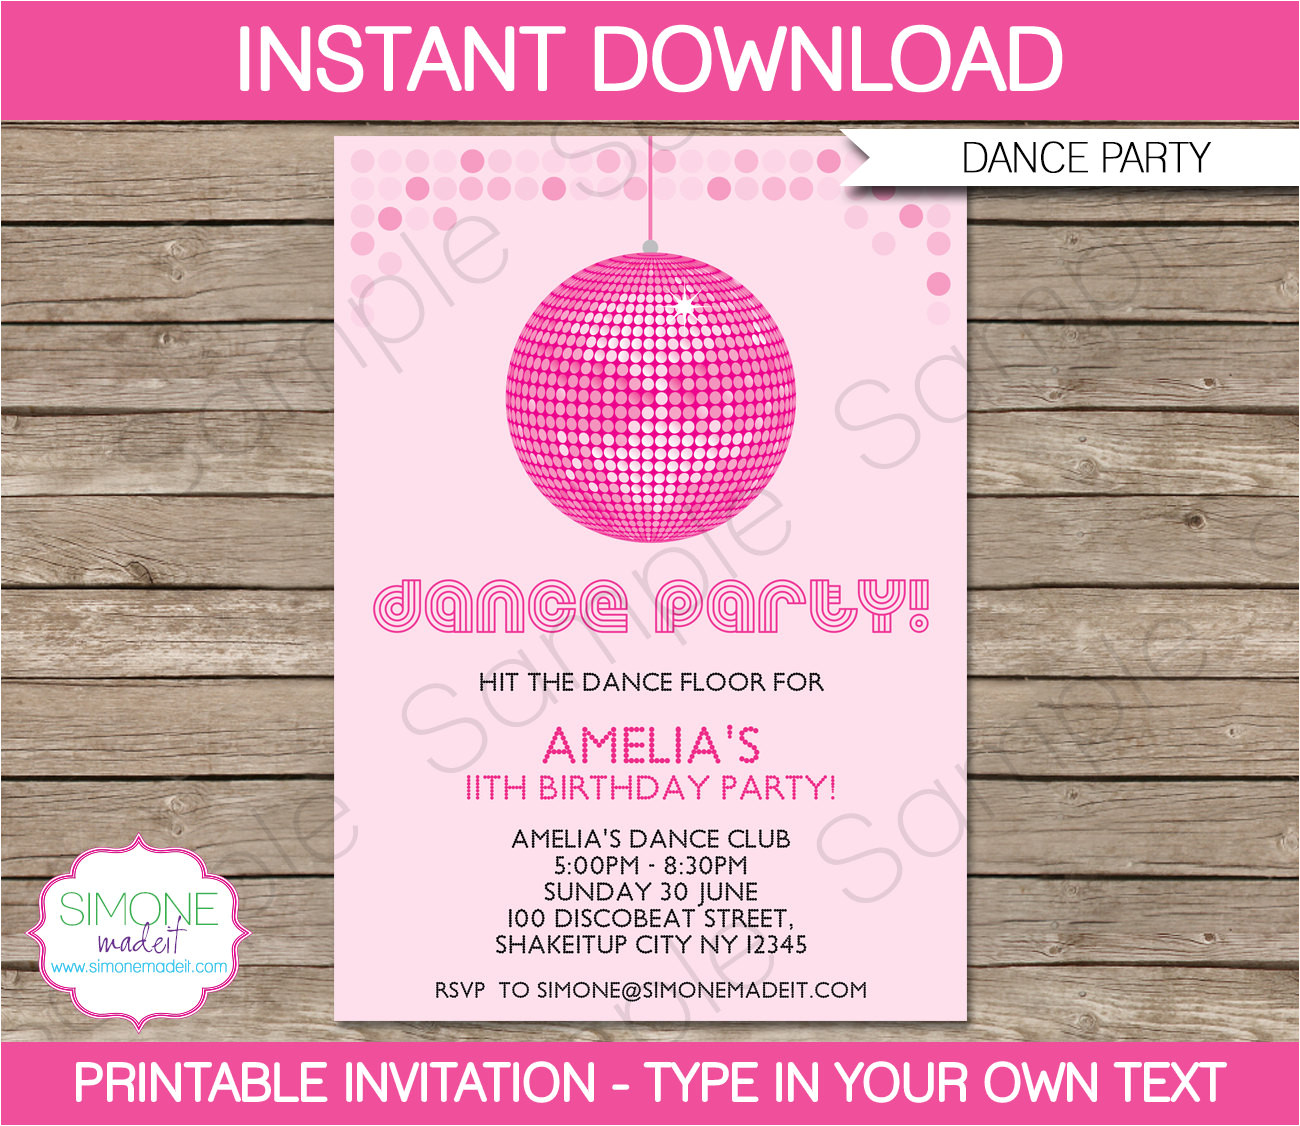 dance party invitation instant download